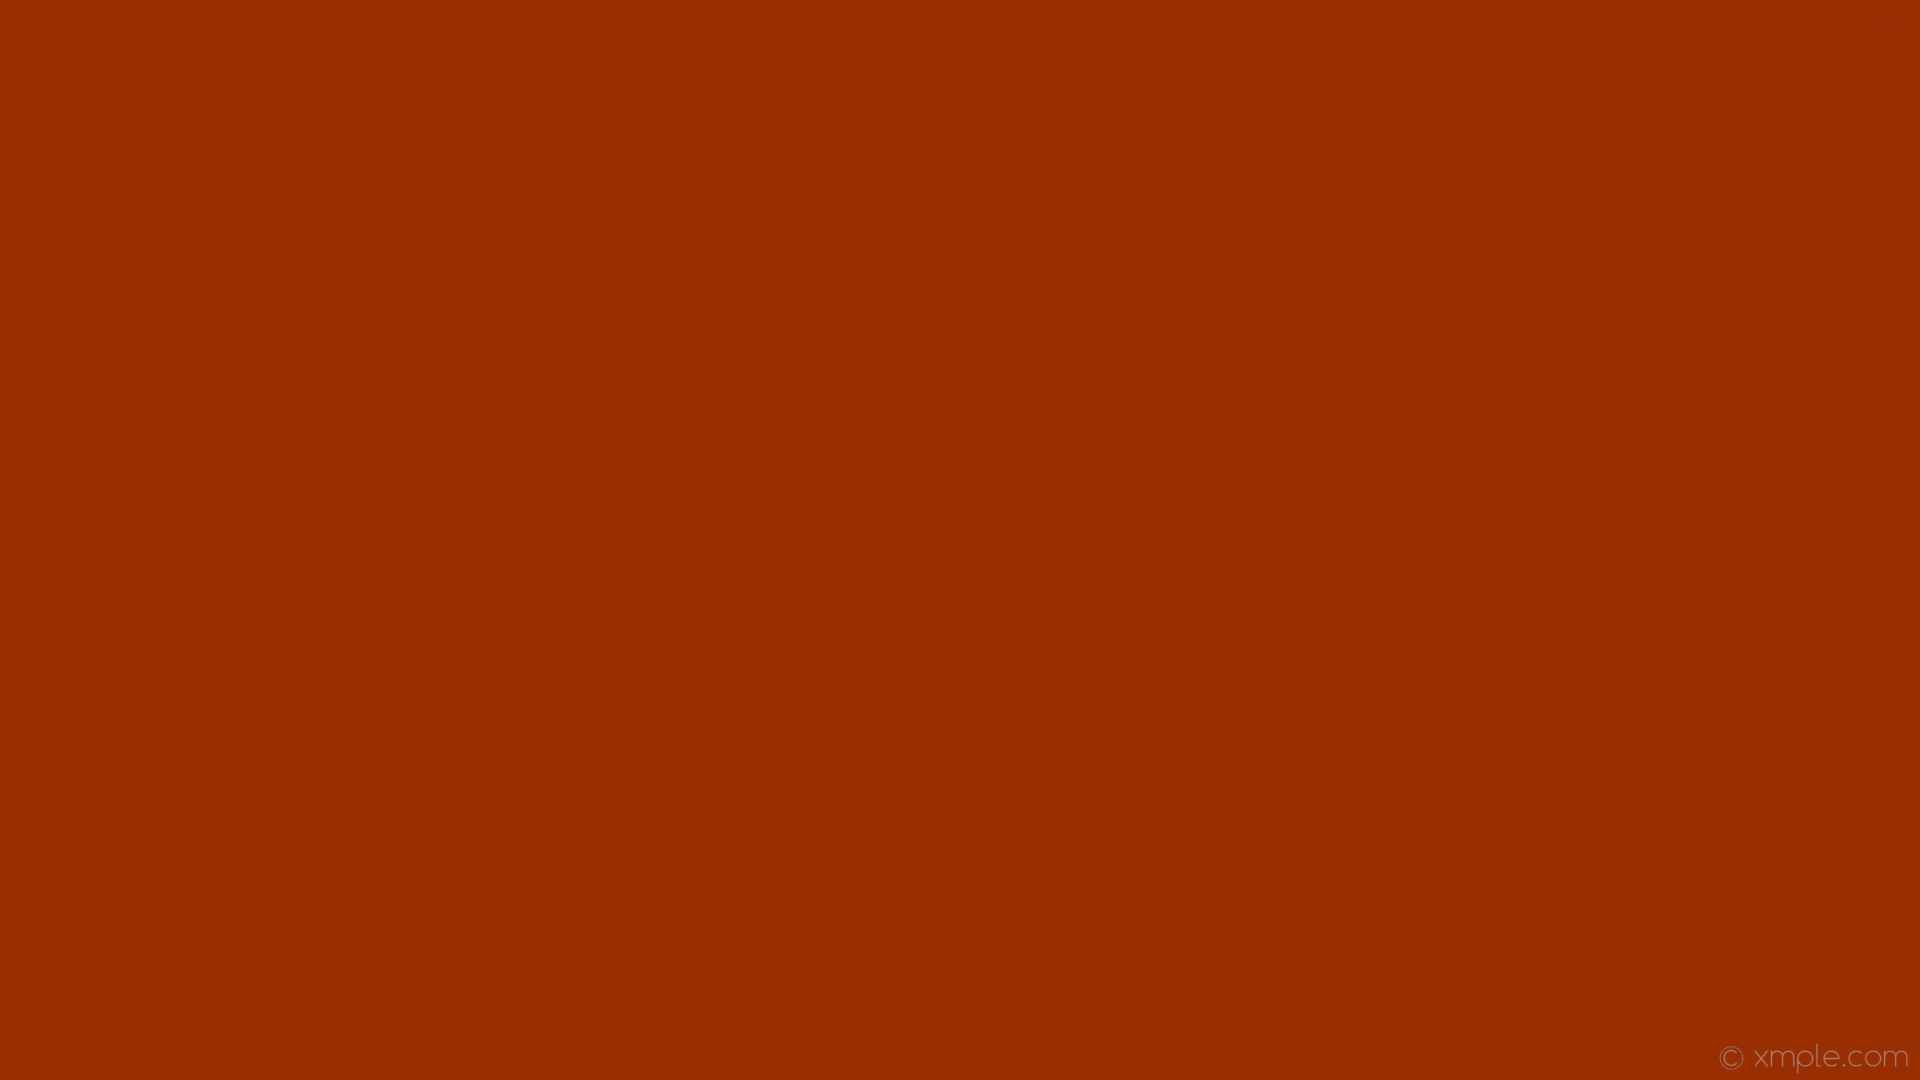 1920x1080 wallpaper orange plain one colour solid color single #992e01